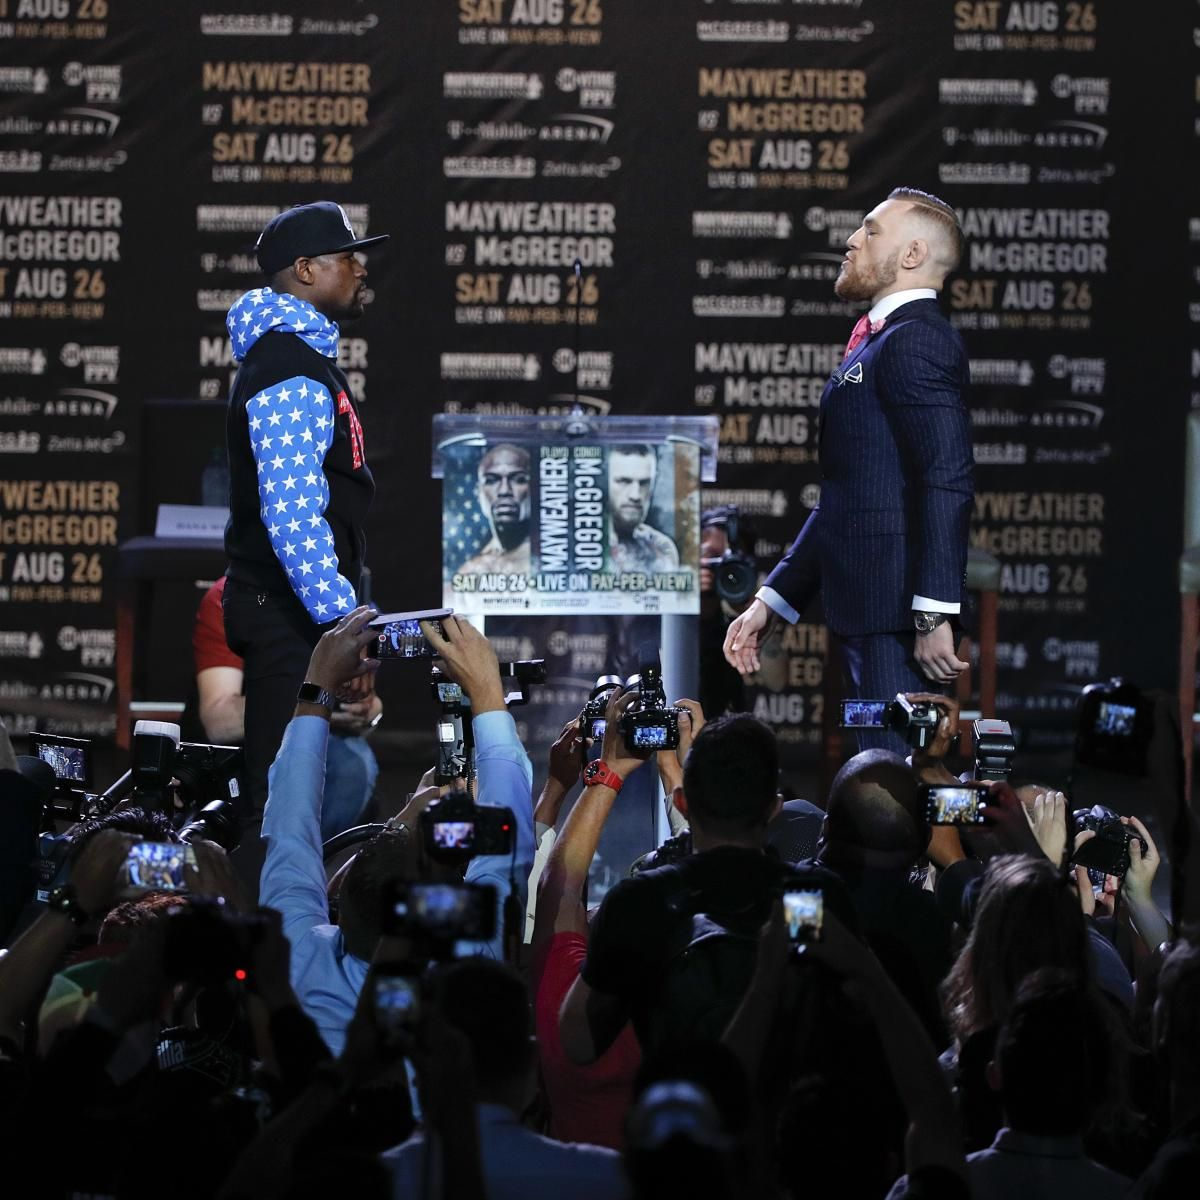 Floyd Mayweather, Conor McGregor Talk Trash at Presser; Notorious Predicts KO - Bleacher Report